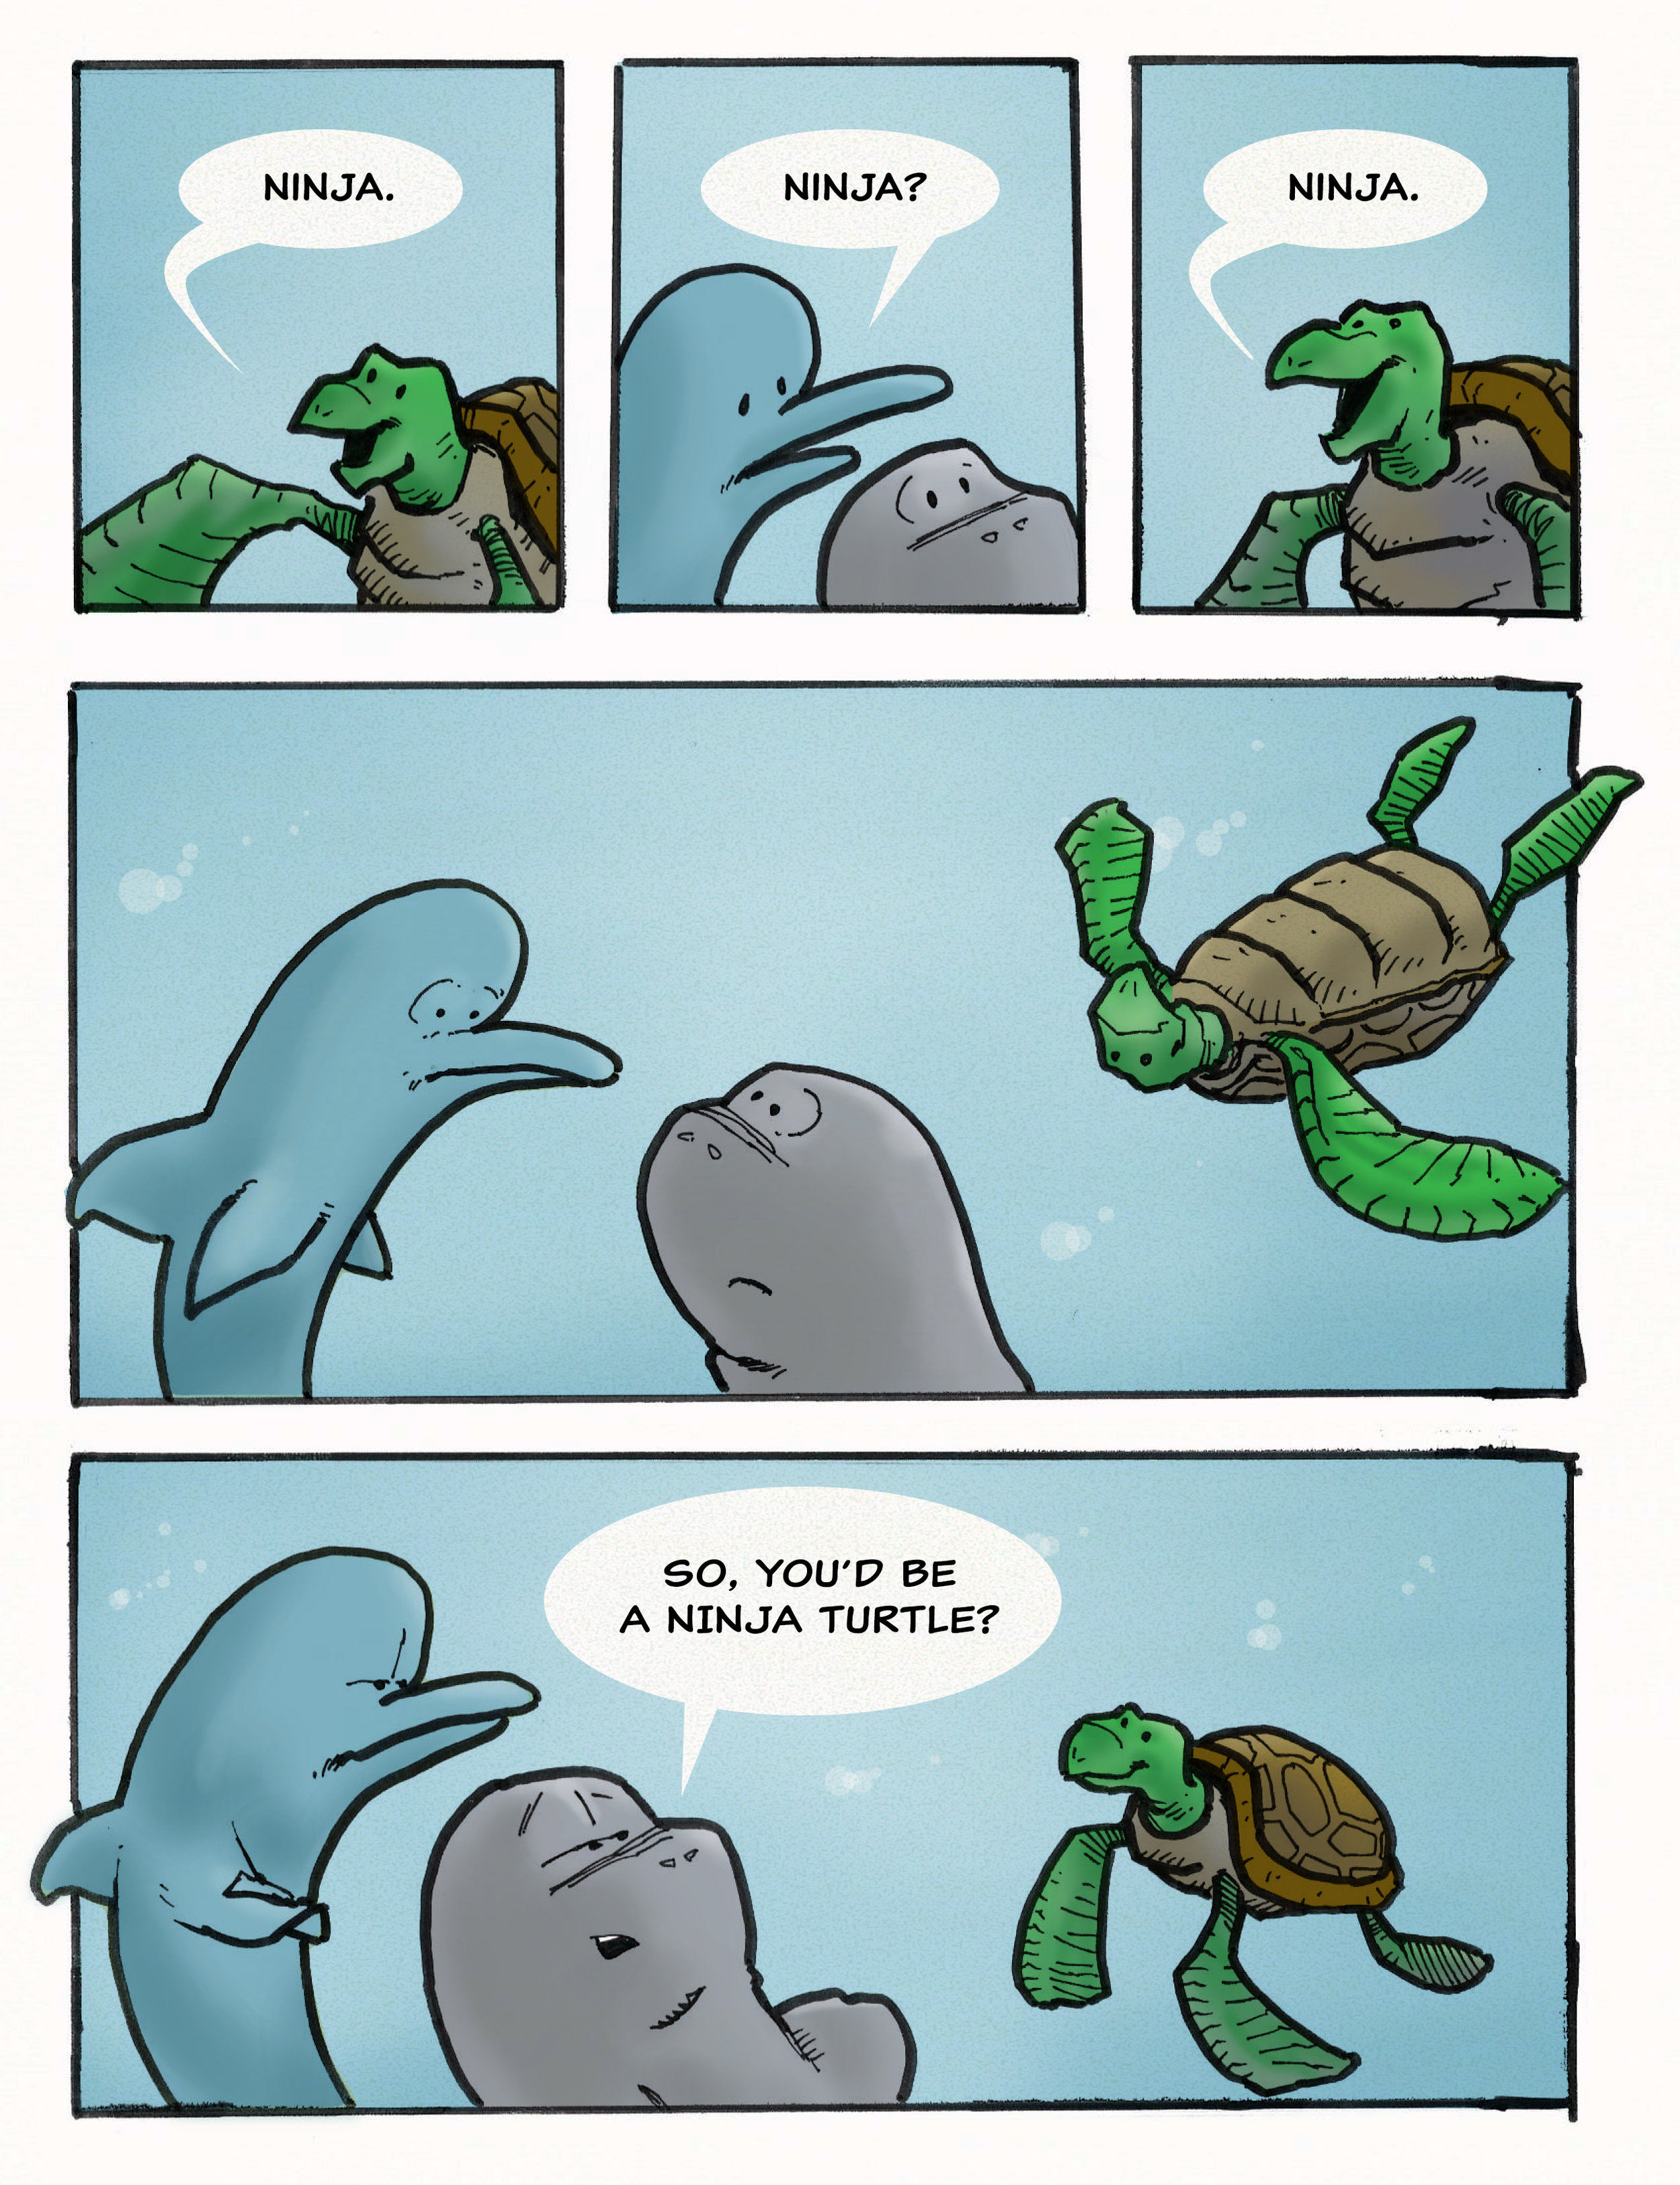 NinjaTurtlePanel02.jpg